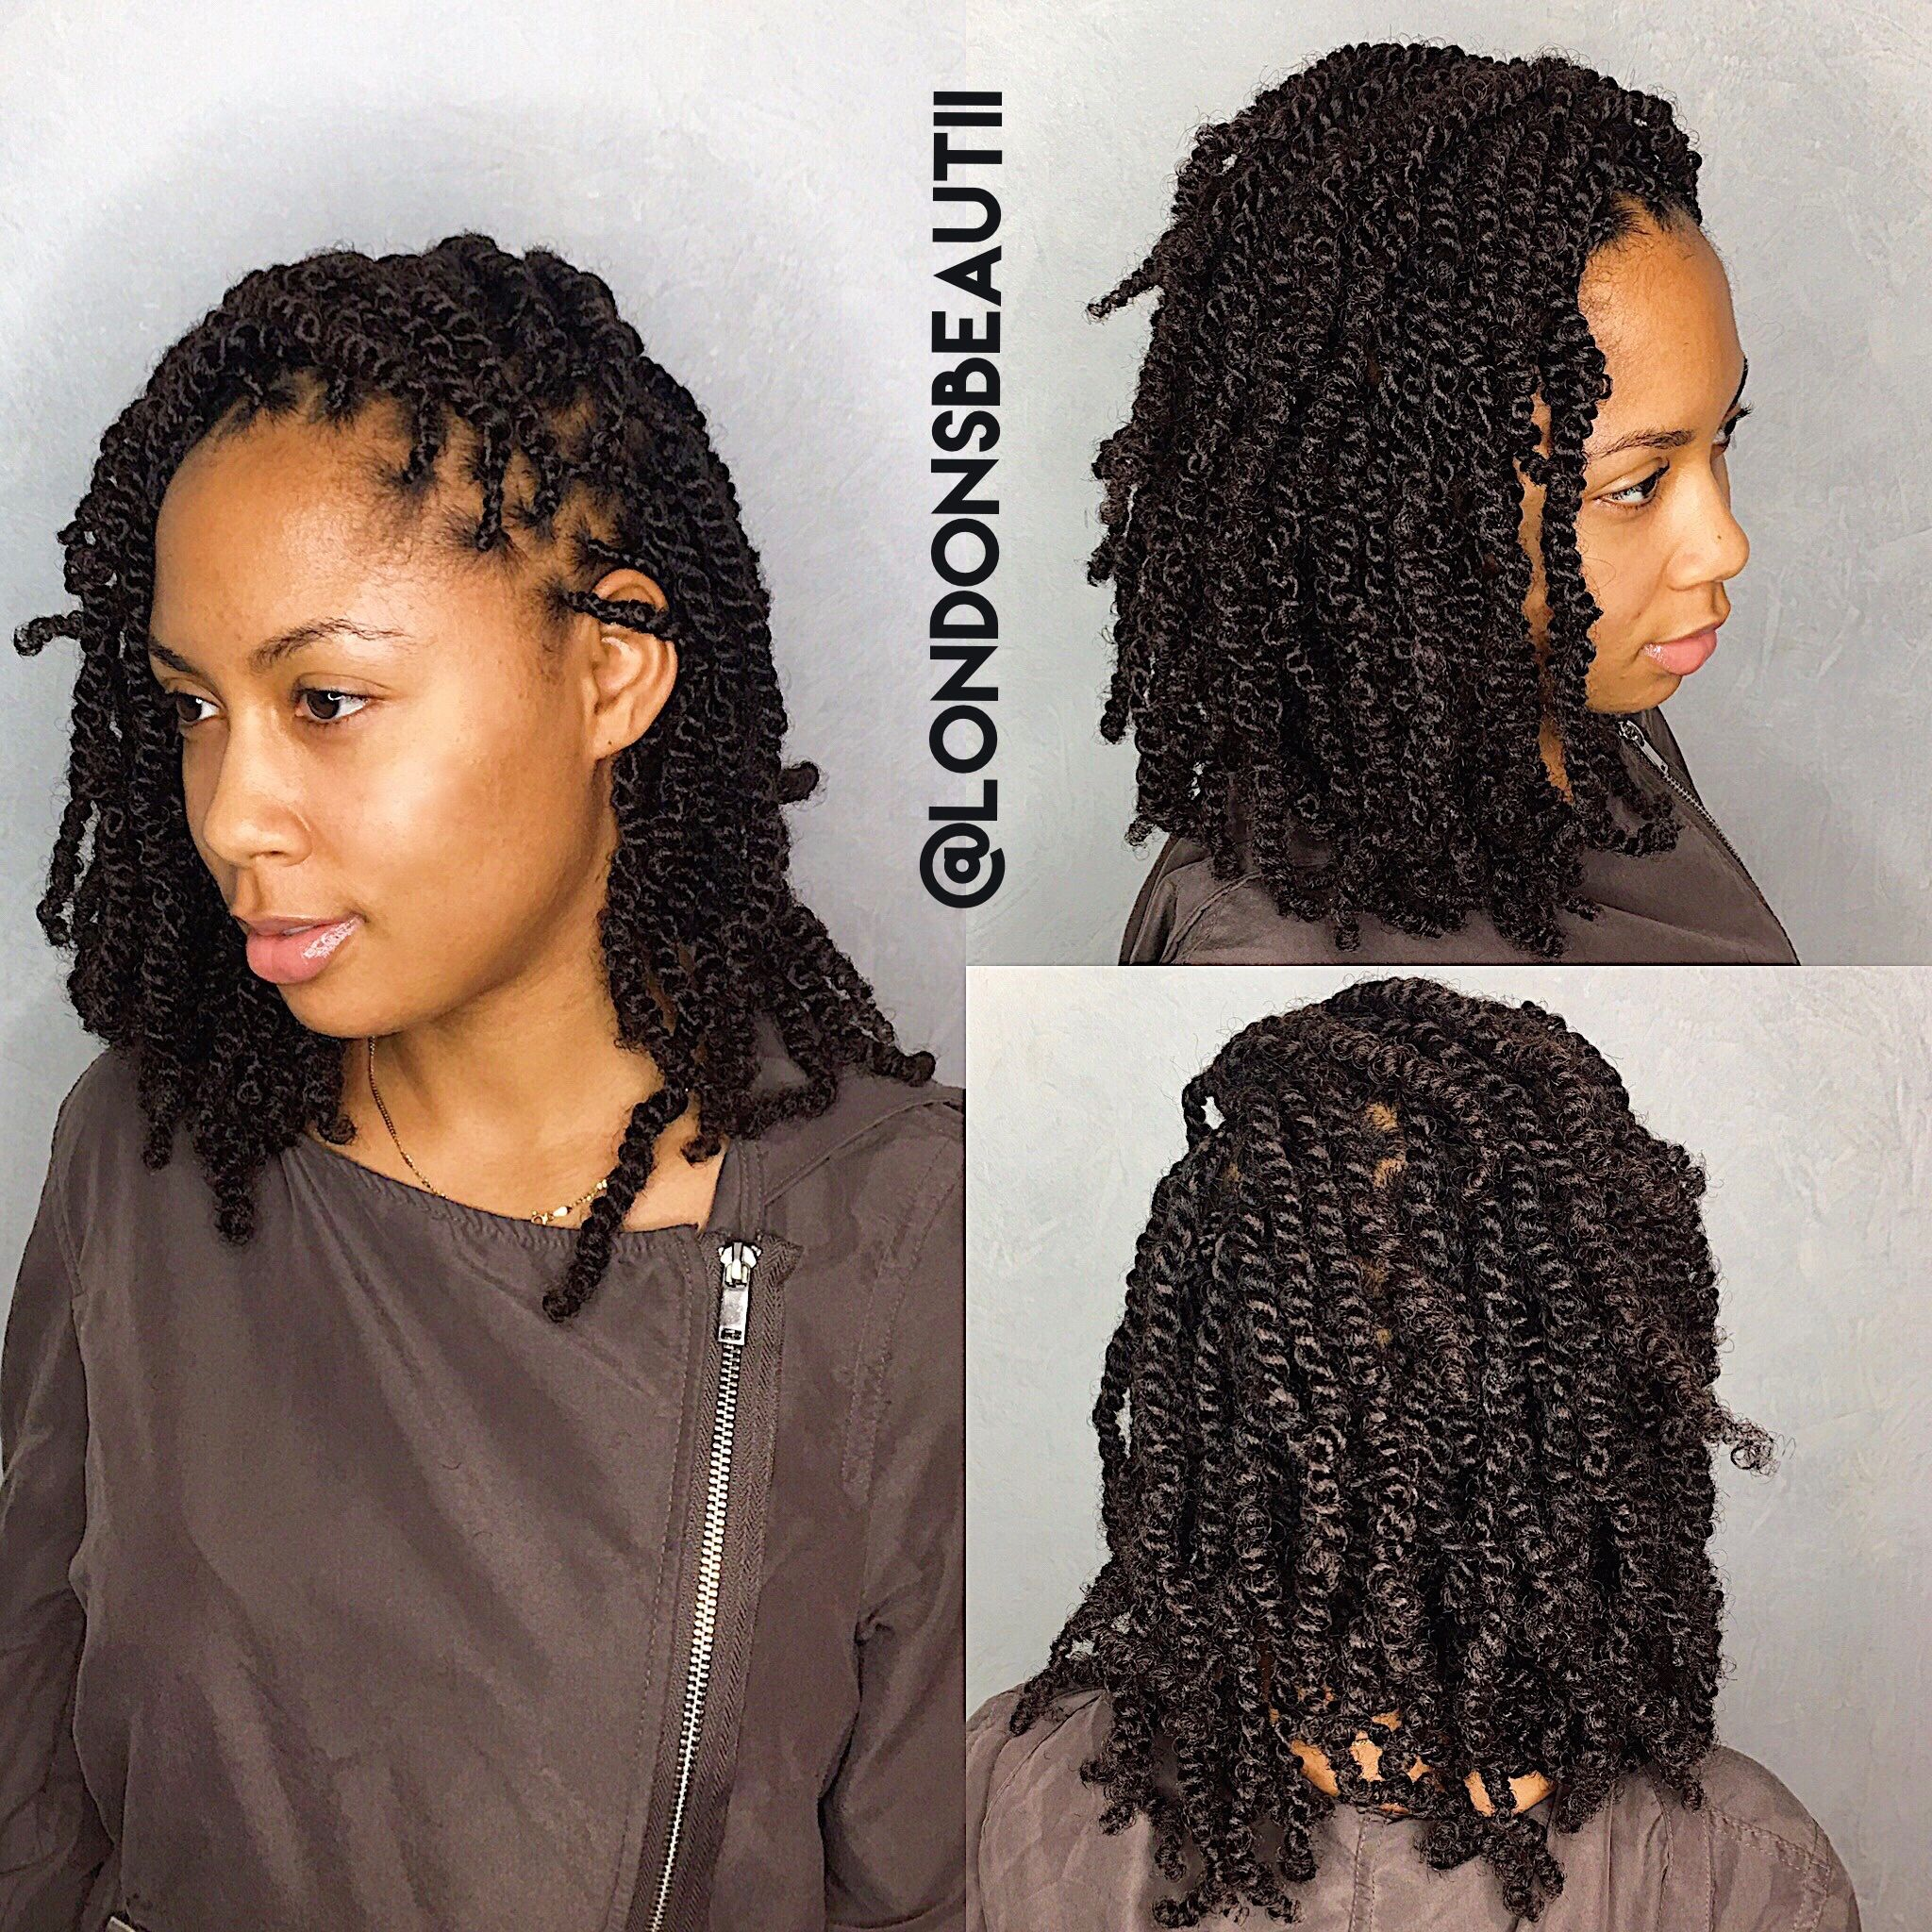 Twisties Hairstyles Adorable Spring Twist Donelondon's Beautii In Bowie Marylandwww